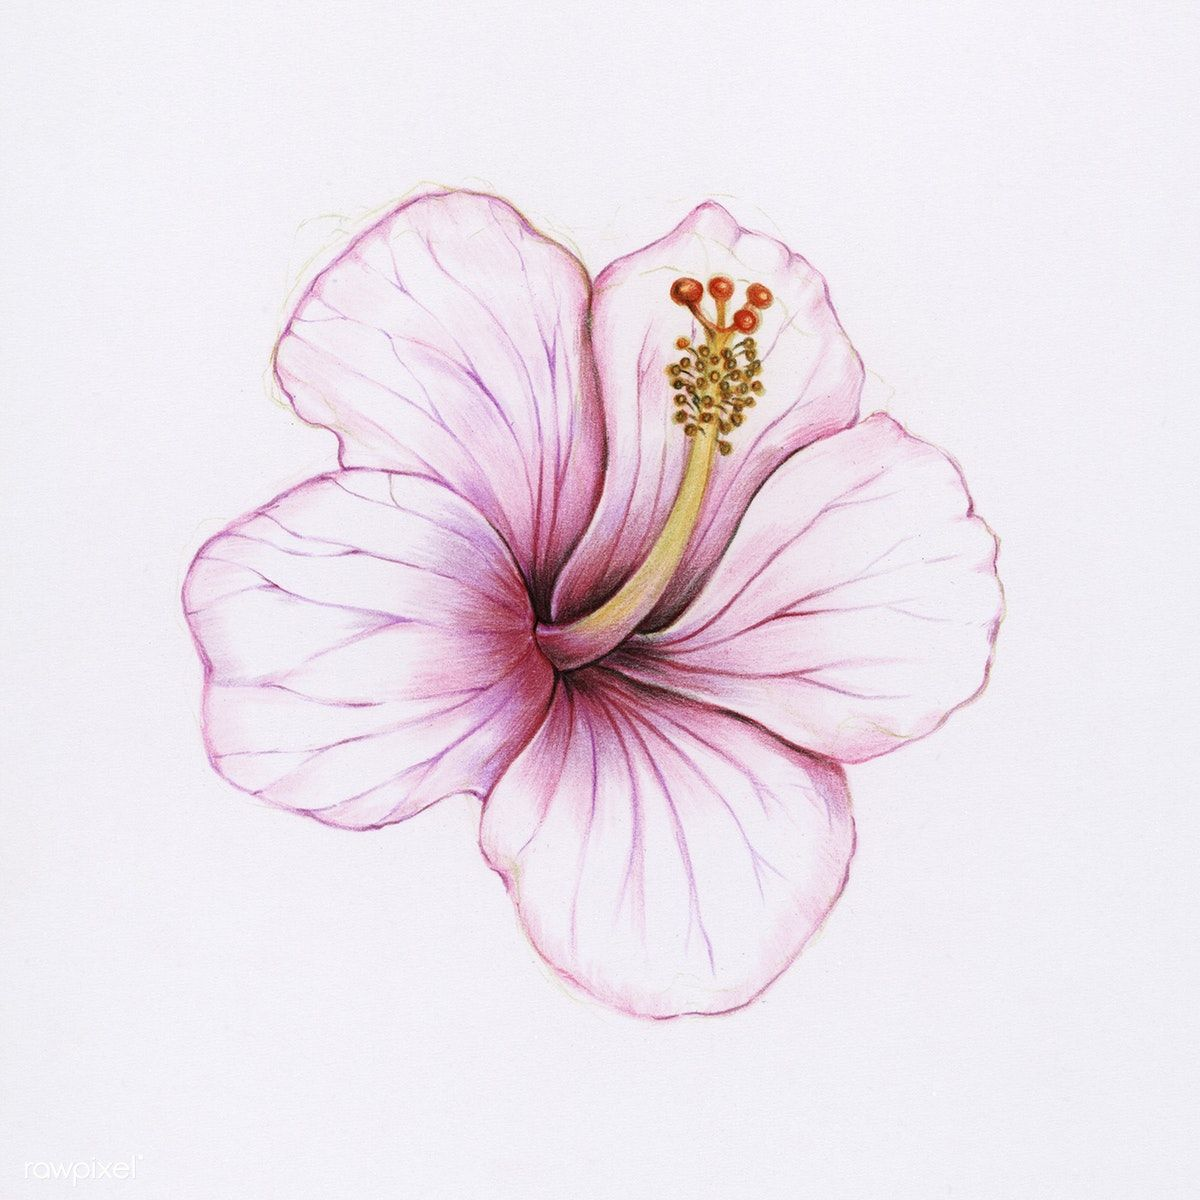 Illustration Of Isolated Hibiscus Flower Watercolor Style Free Image By Rawpixel Com Hibiscus Flower Drawing Watercolor Flowers Hibiscus Drawing